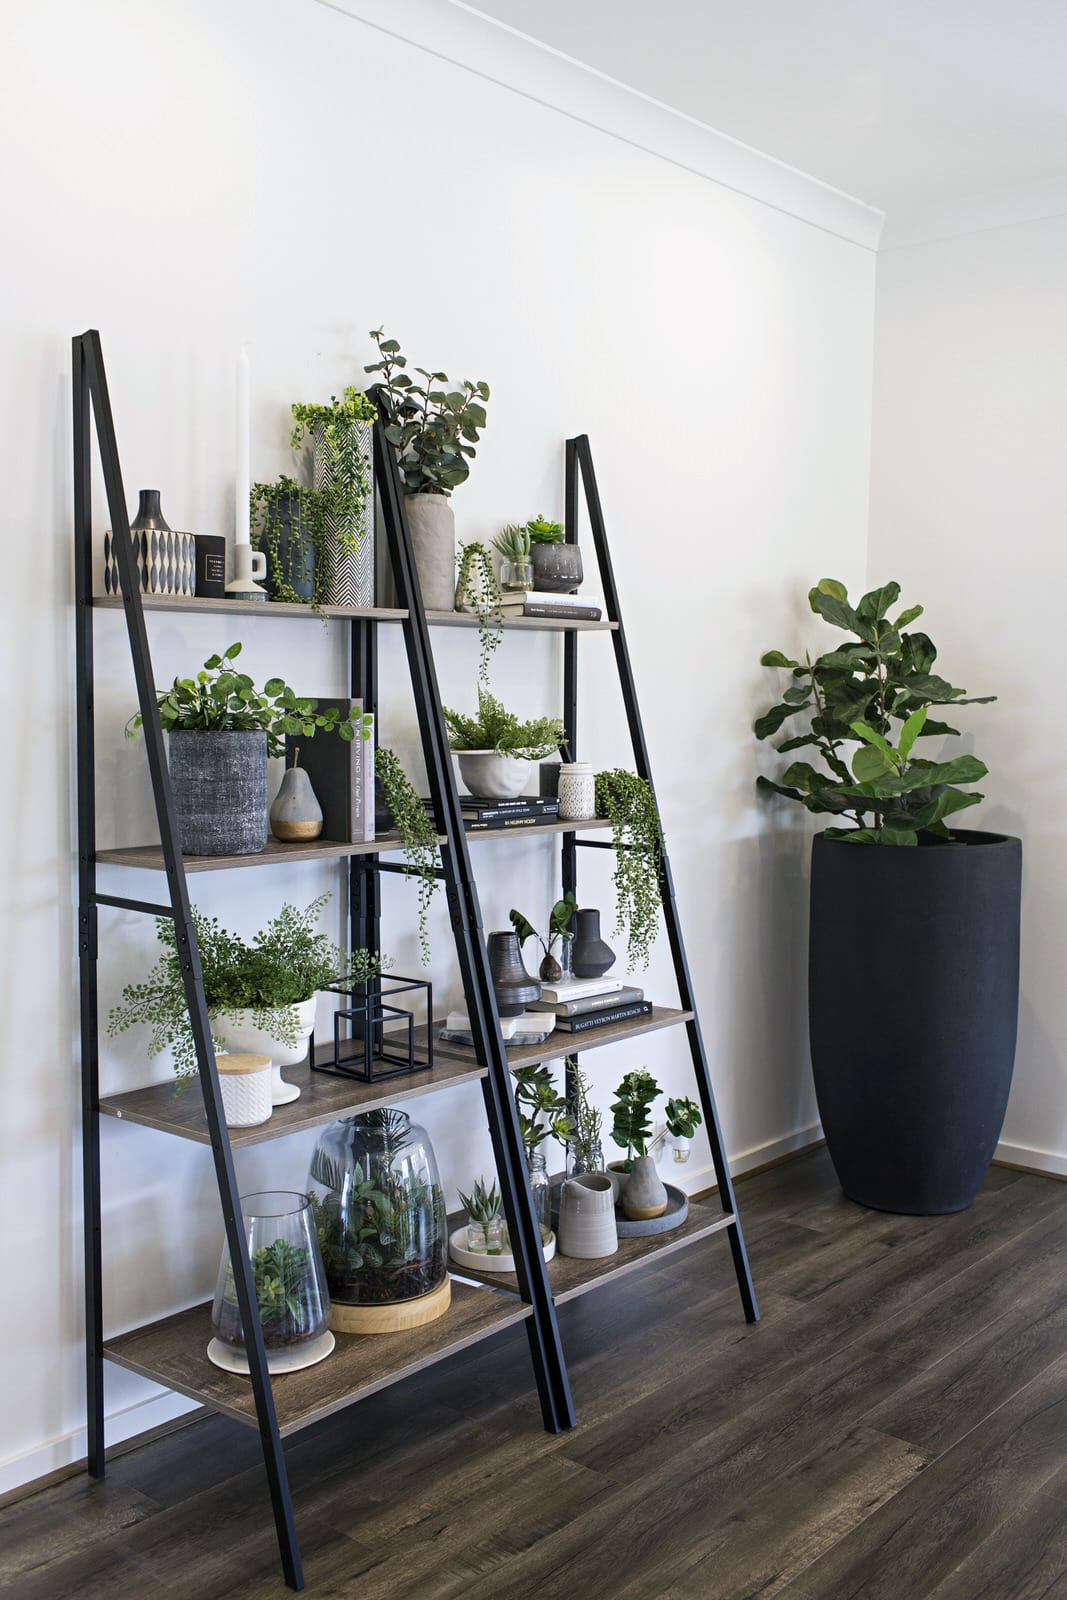 kmart industrial ladder shelf indoor vertical garden ideas